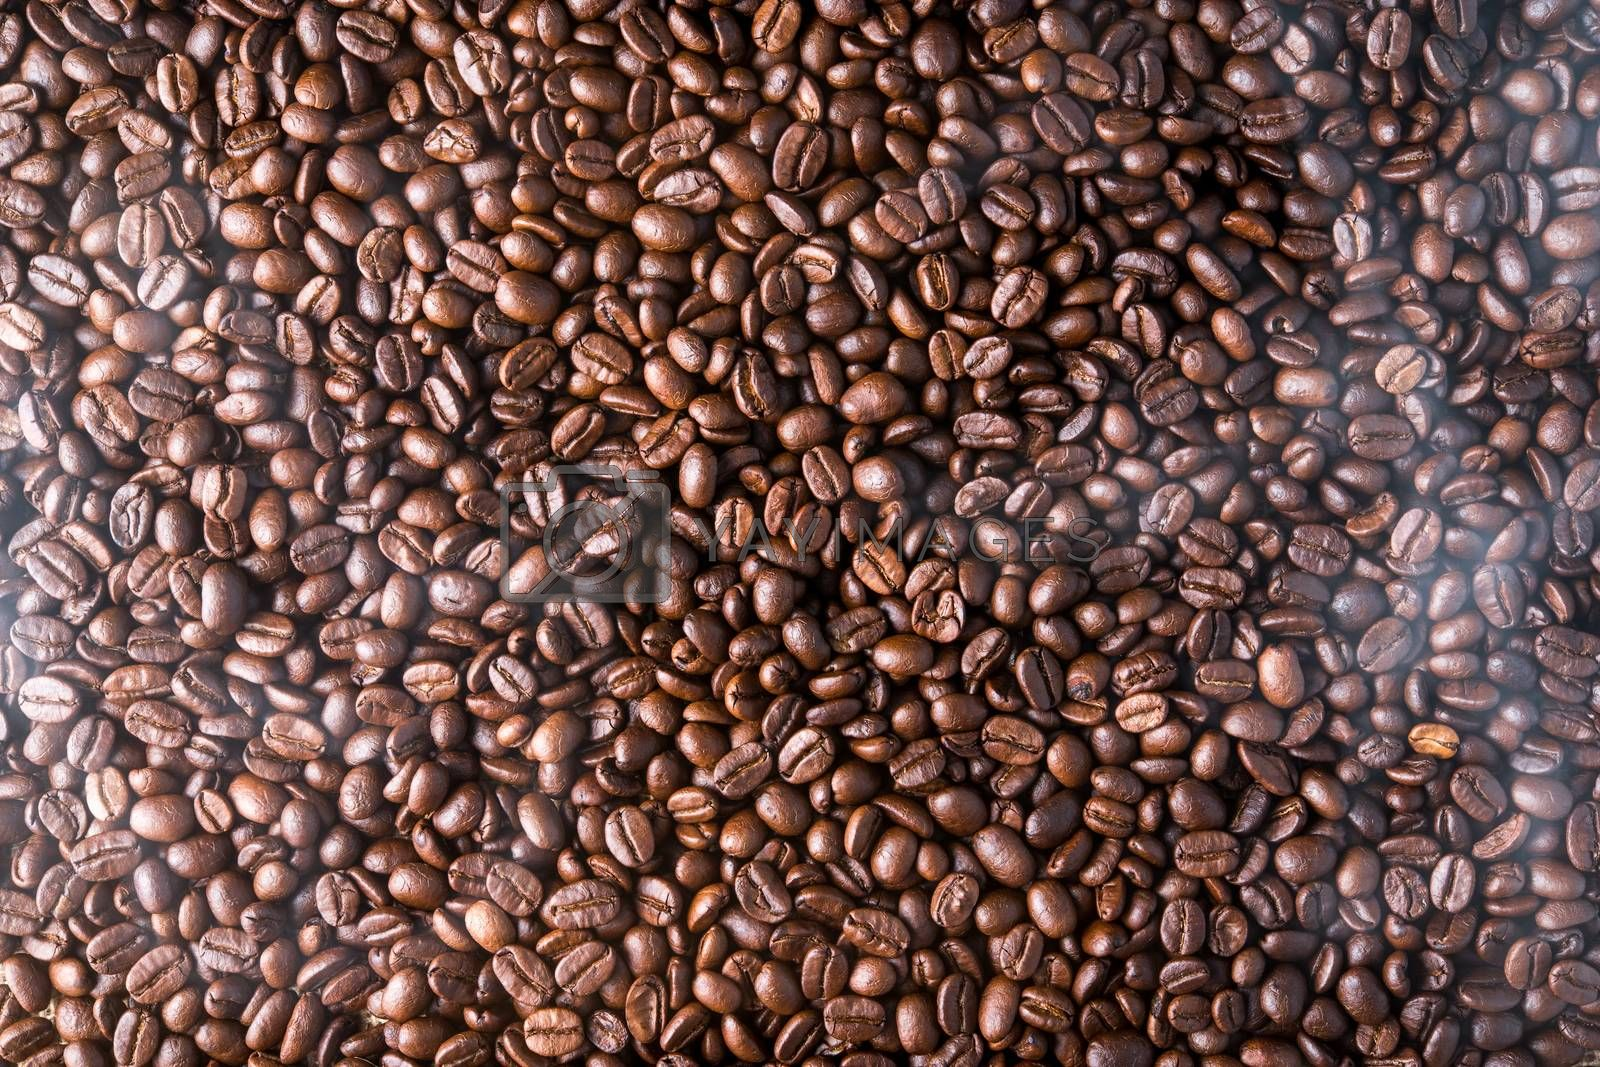 top view of roasted coffee beans background with smoke